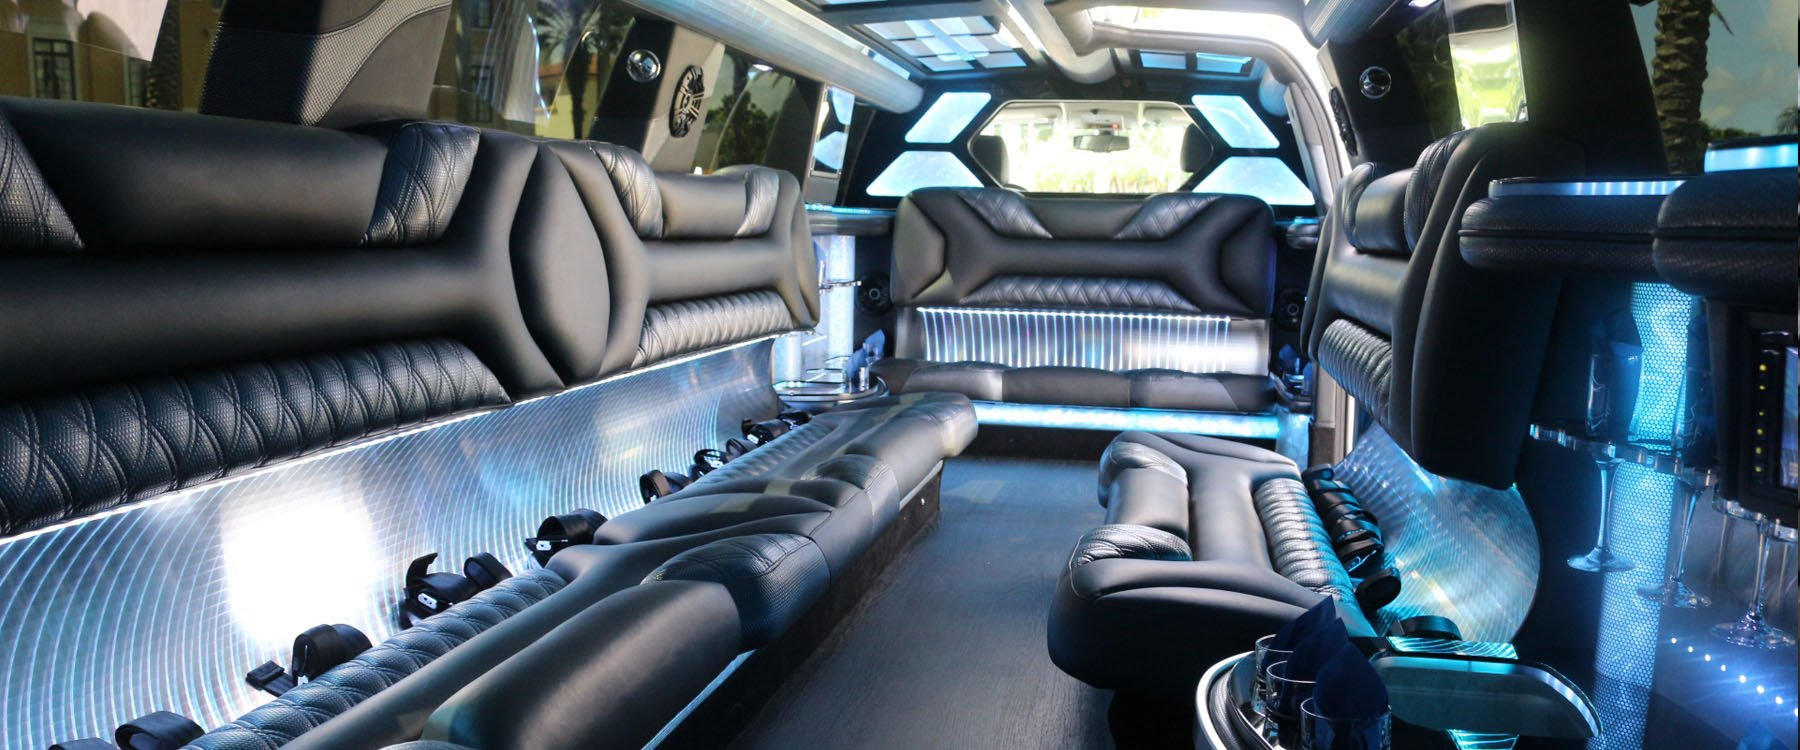 Inside rear view of Cadillac Limo rental in Miami